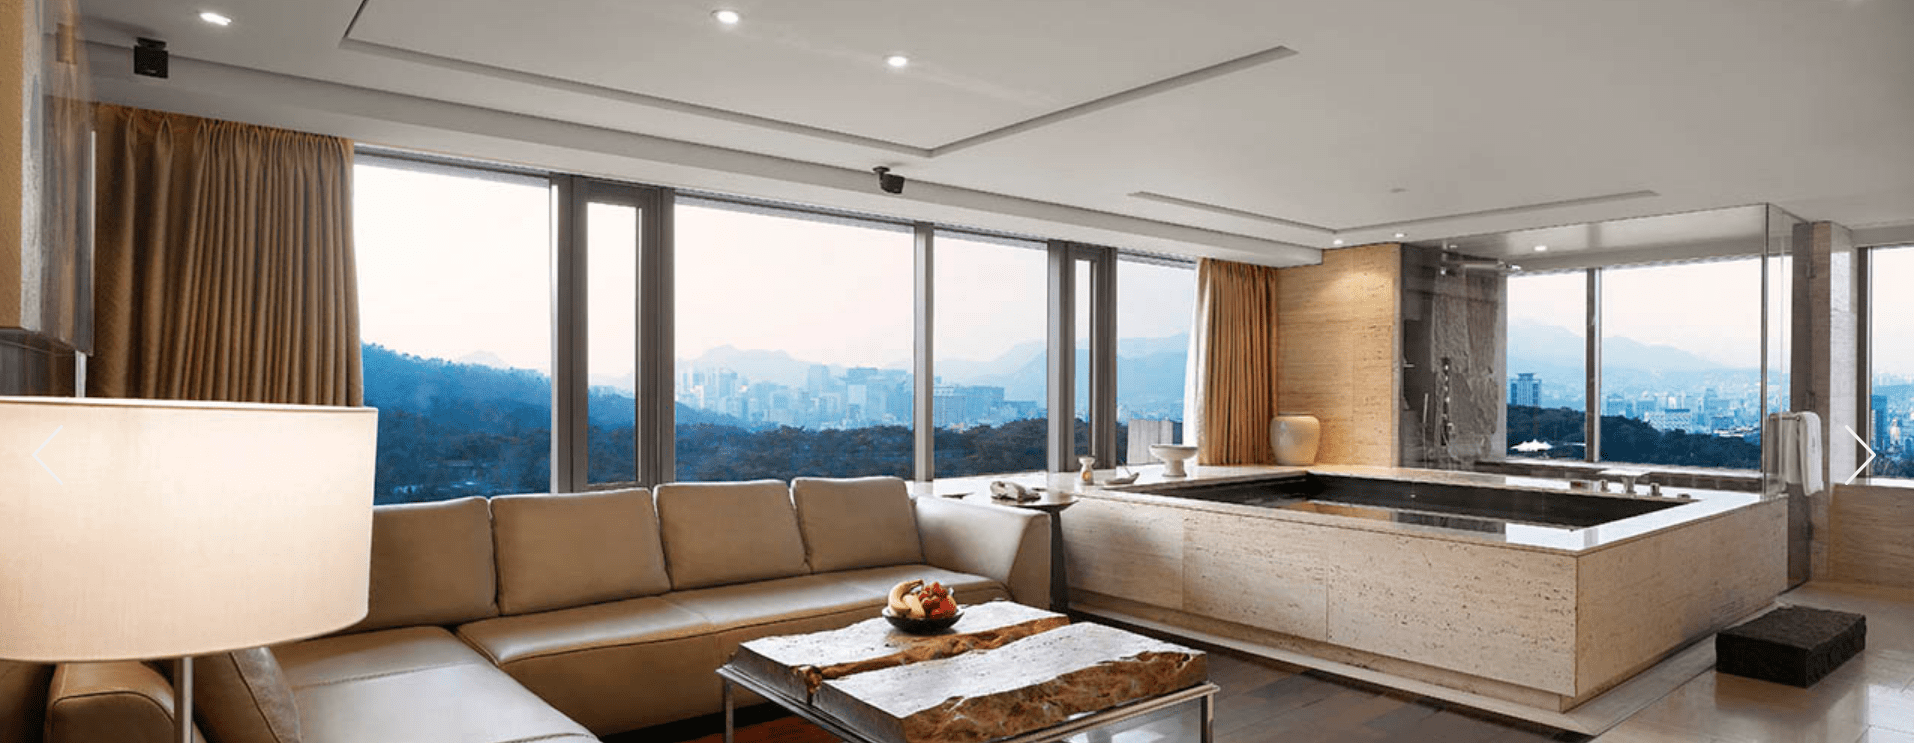 Banyan Tree Club & Spa Seoul | Jung-gu, Seoul